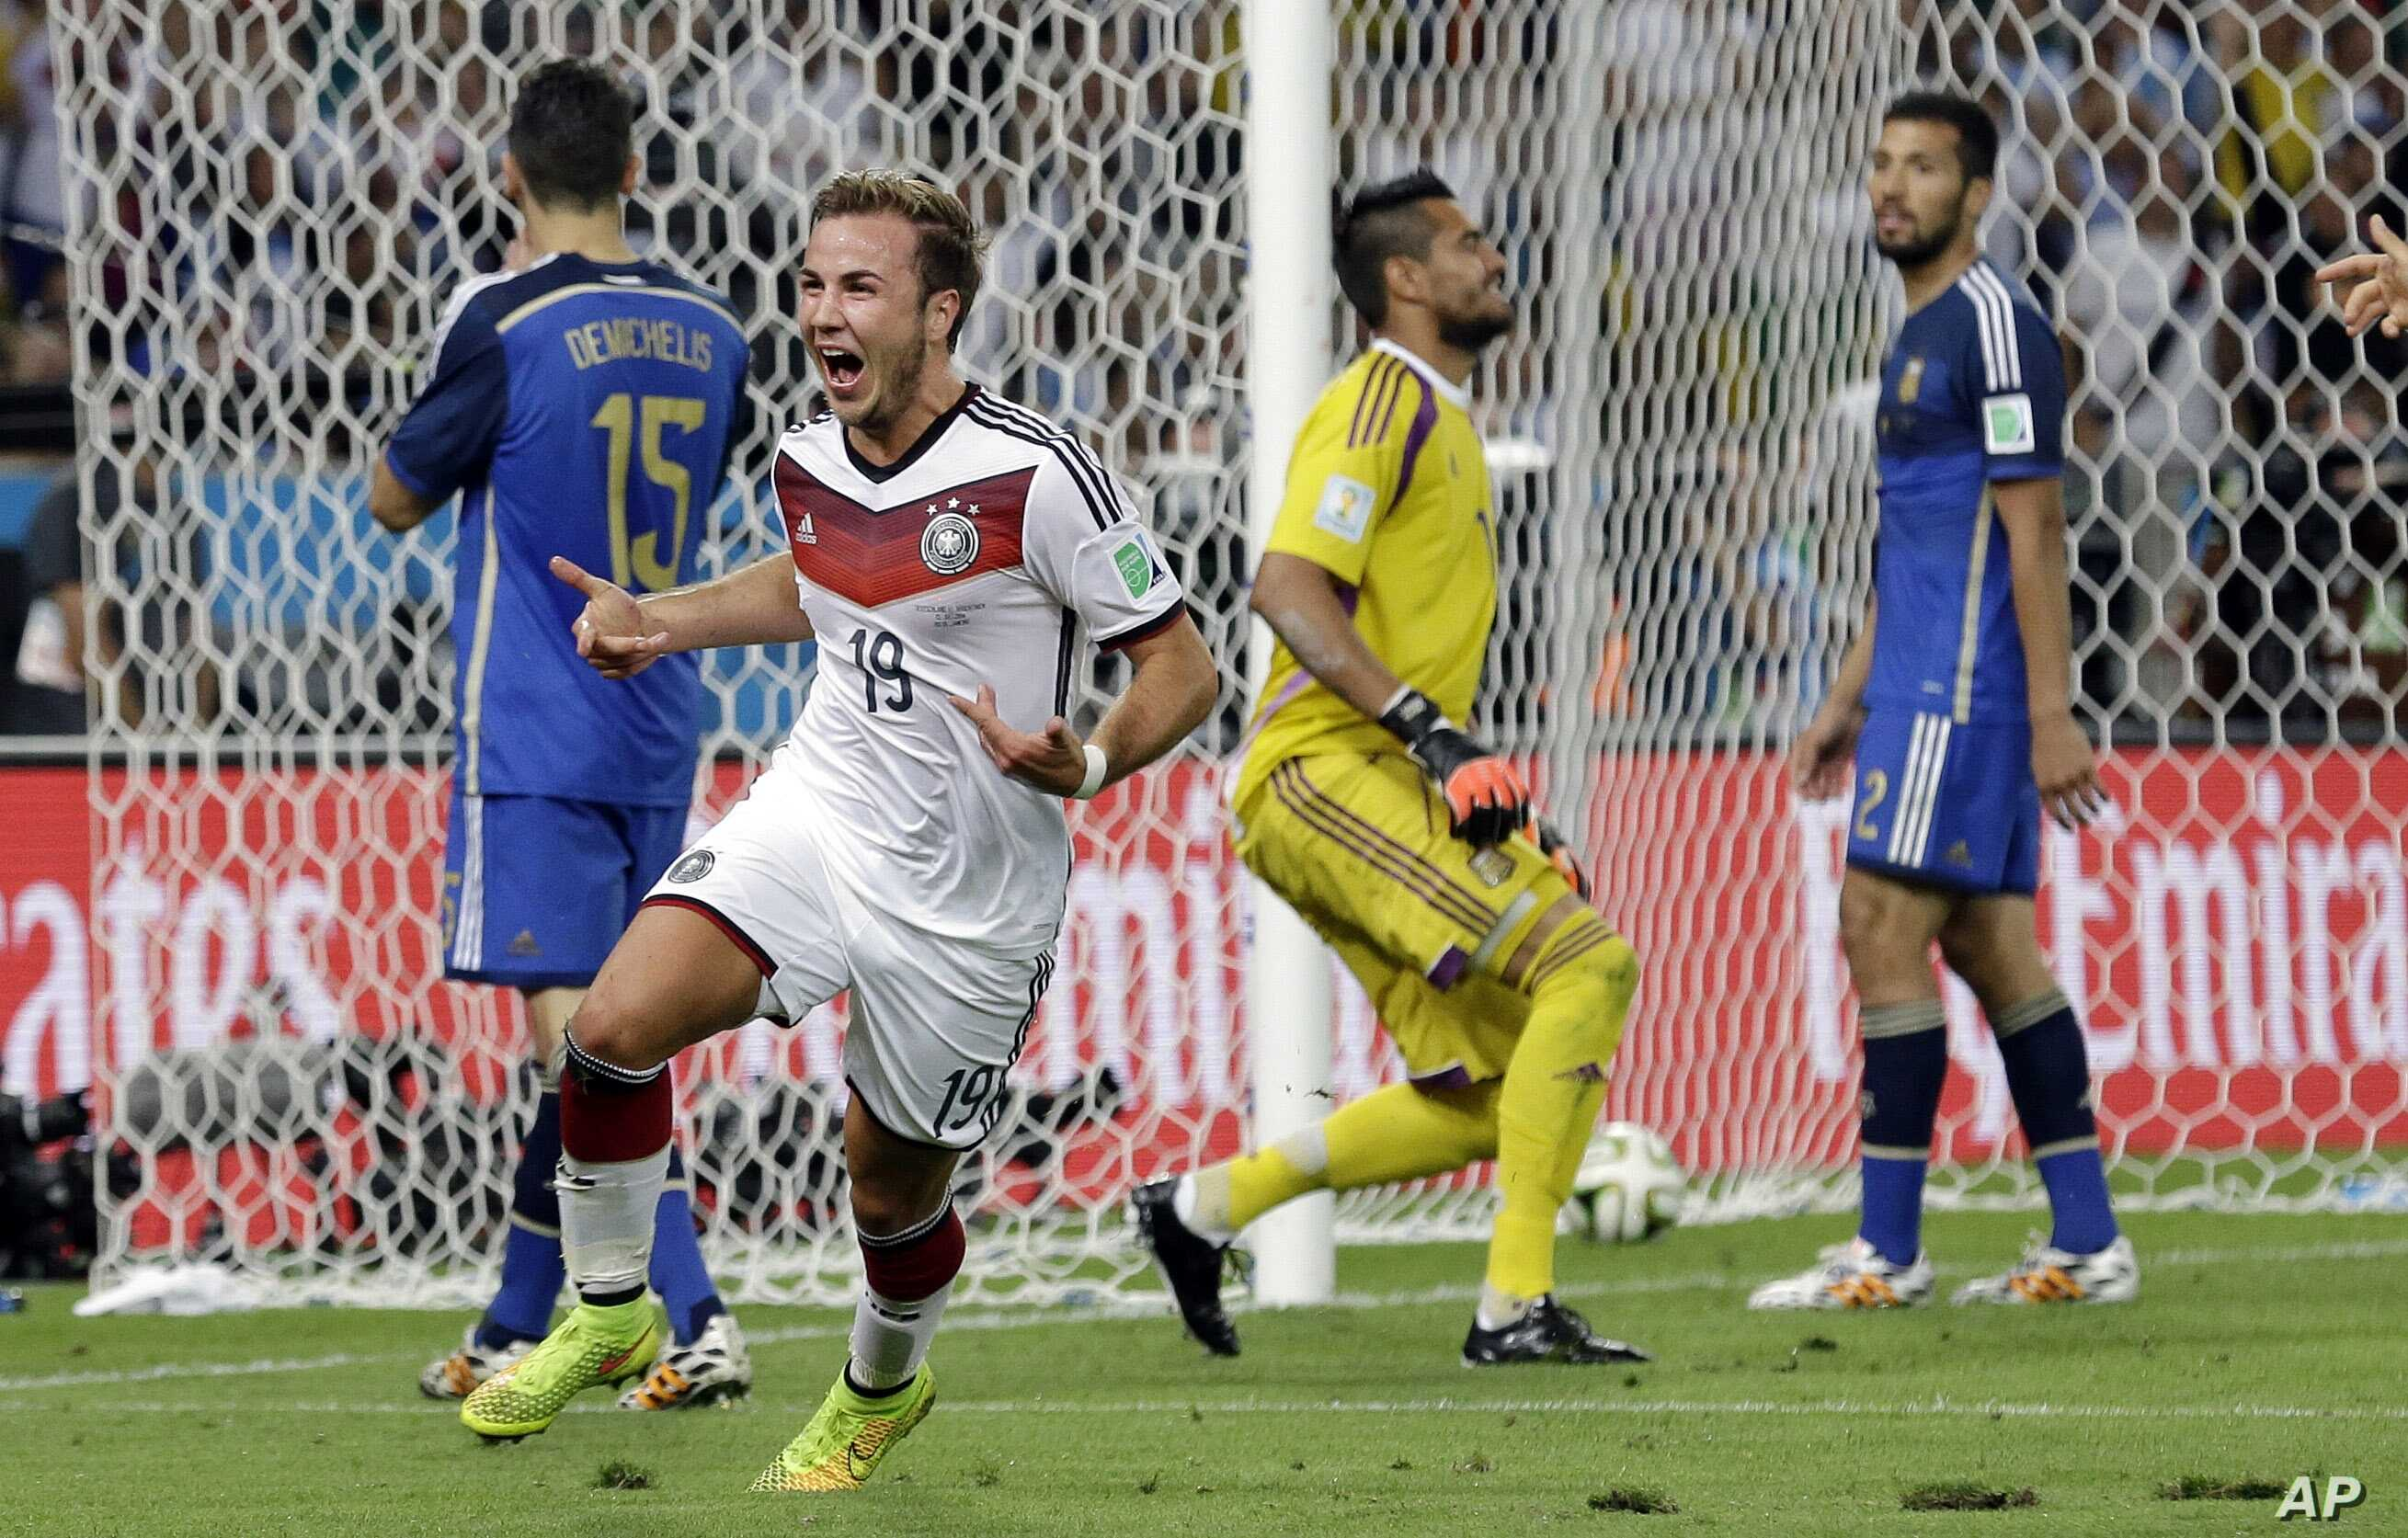 FILE - Germany's Mario Goetze celebrates after scoring on Argentina goalkeeper Sergio Romero during the World Cup final soccer match at the Maracana Stadium in Rio de Janeiro, Brazil, July 13, 2014.